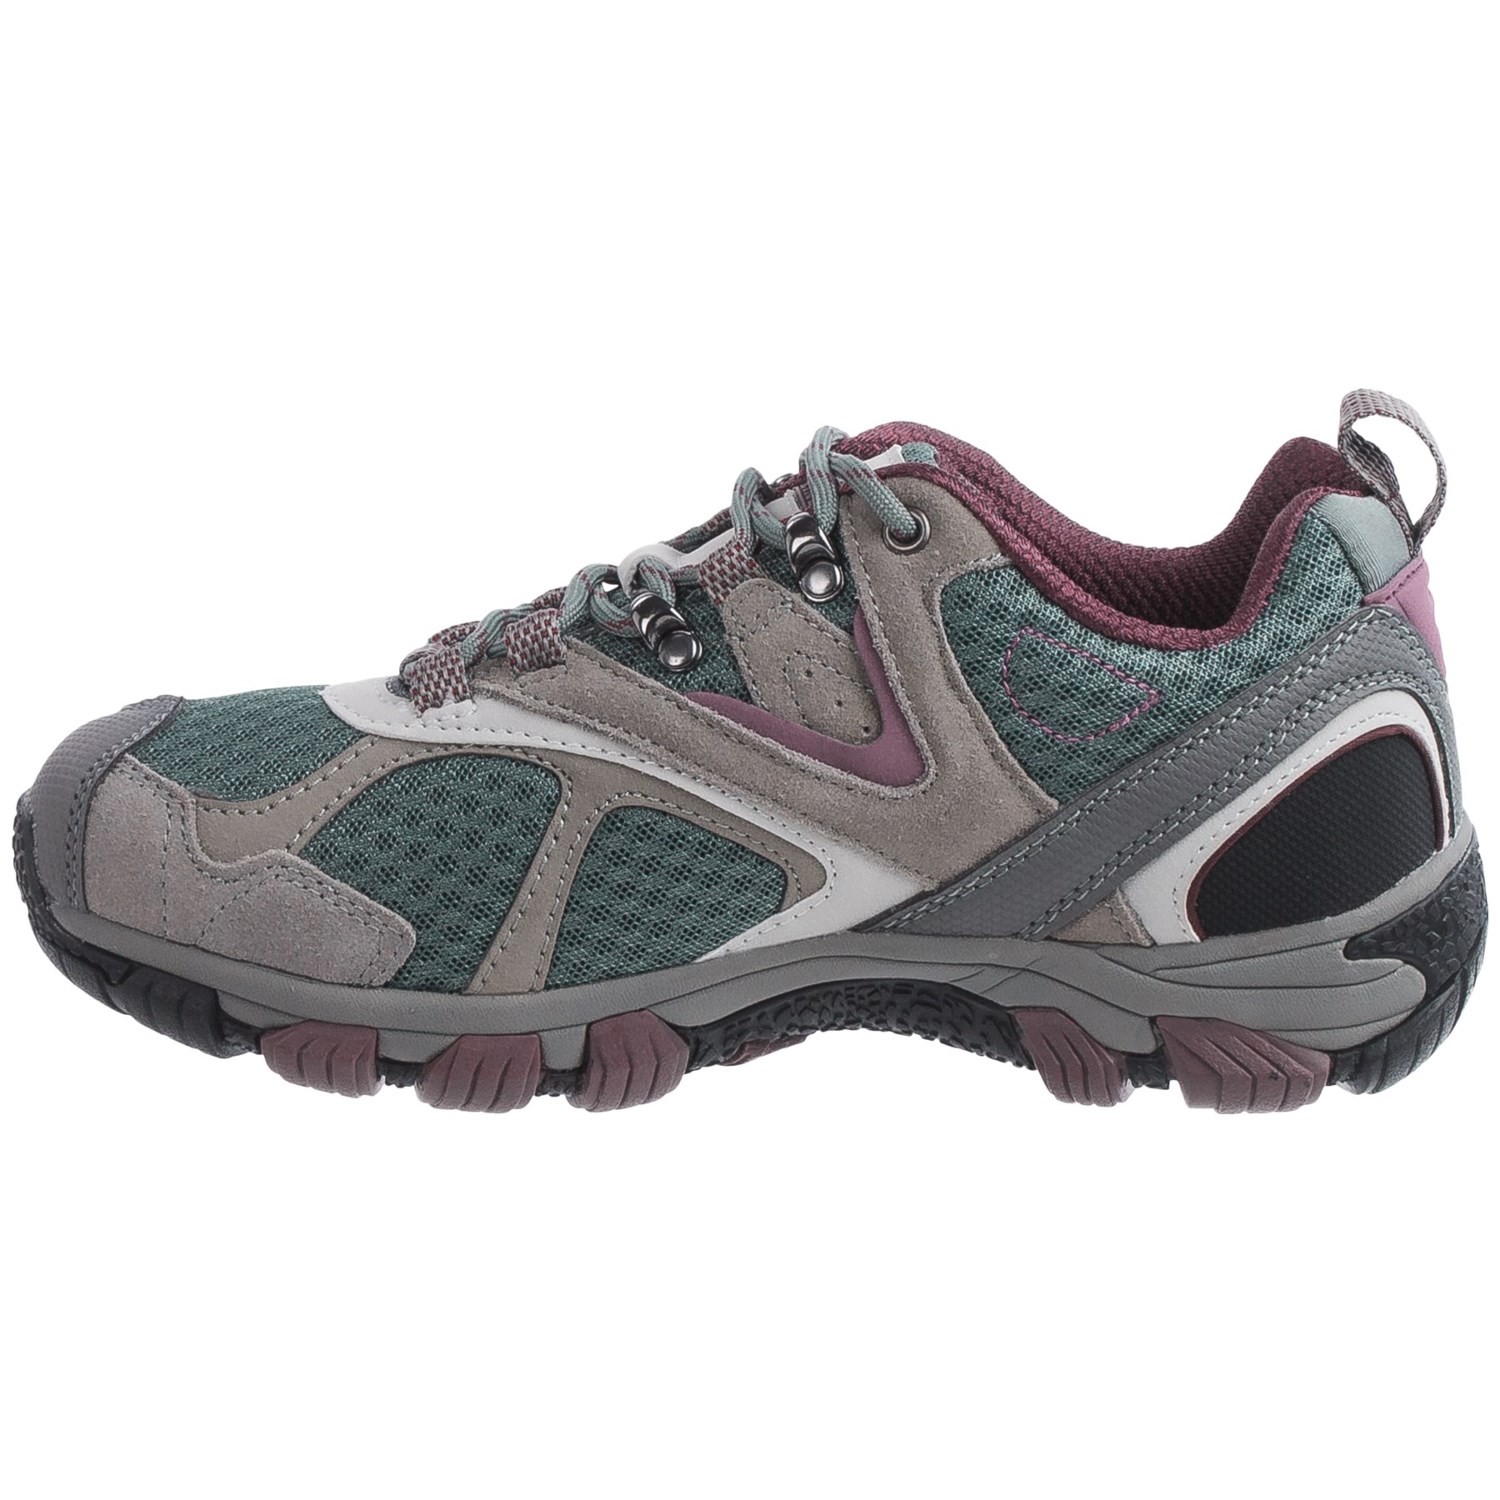 Good Women Shoes For Hiking